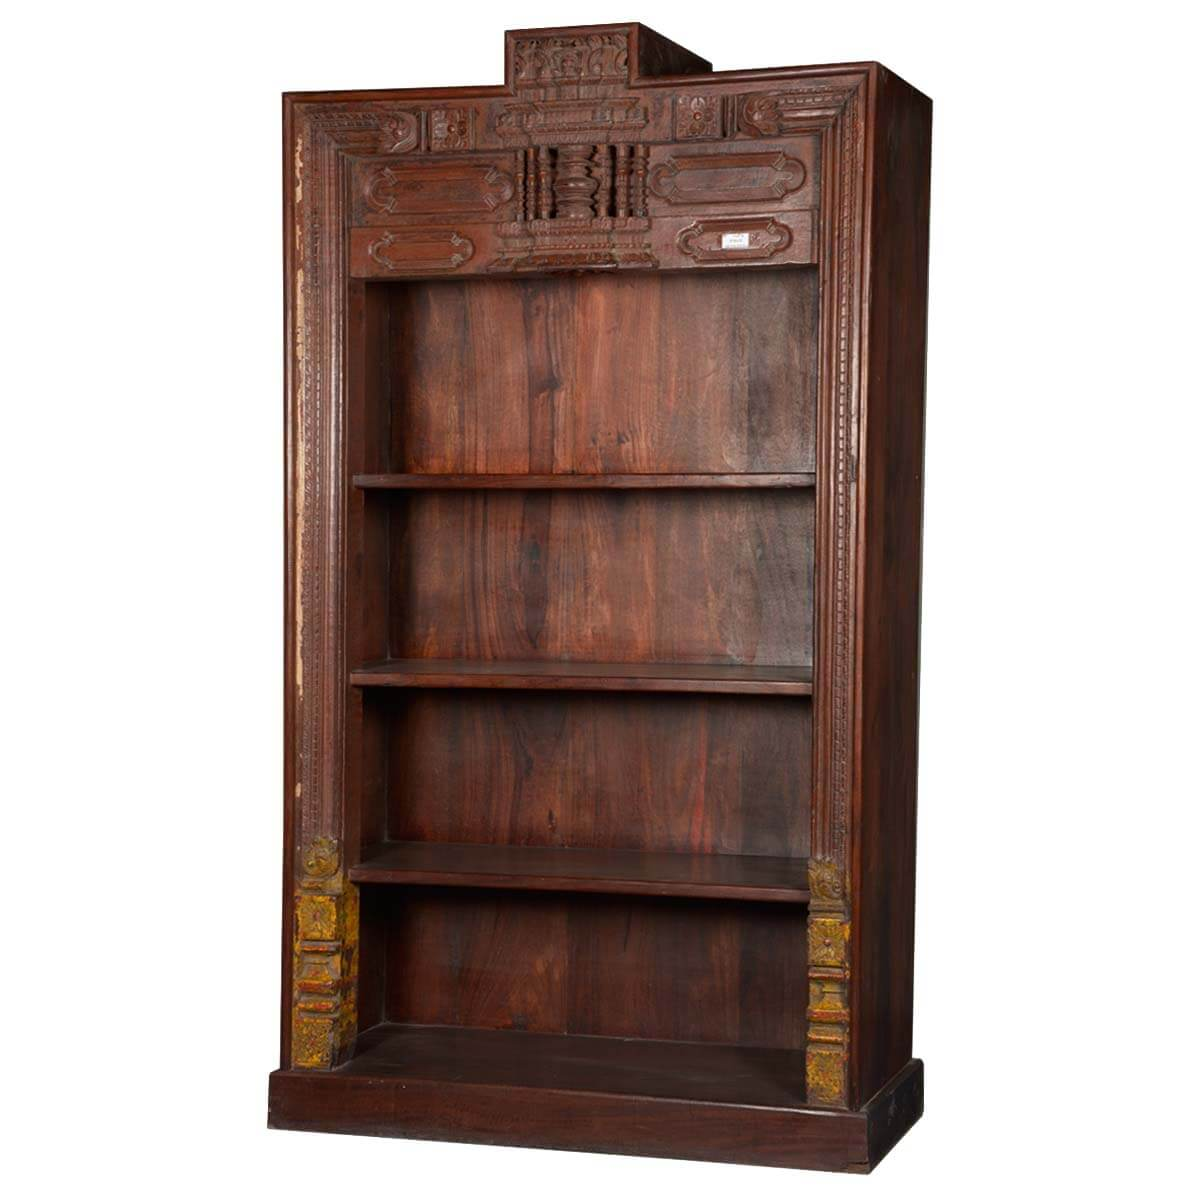 Timber Bookcase: Classic Hand Carved Reclaimed Wood 4-Shelf Open Display